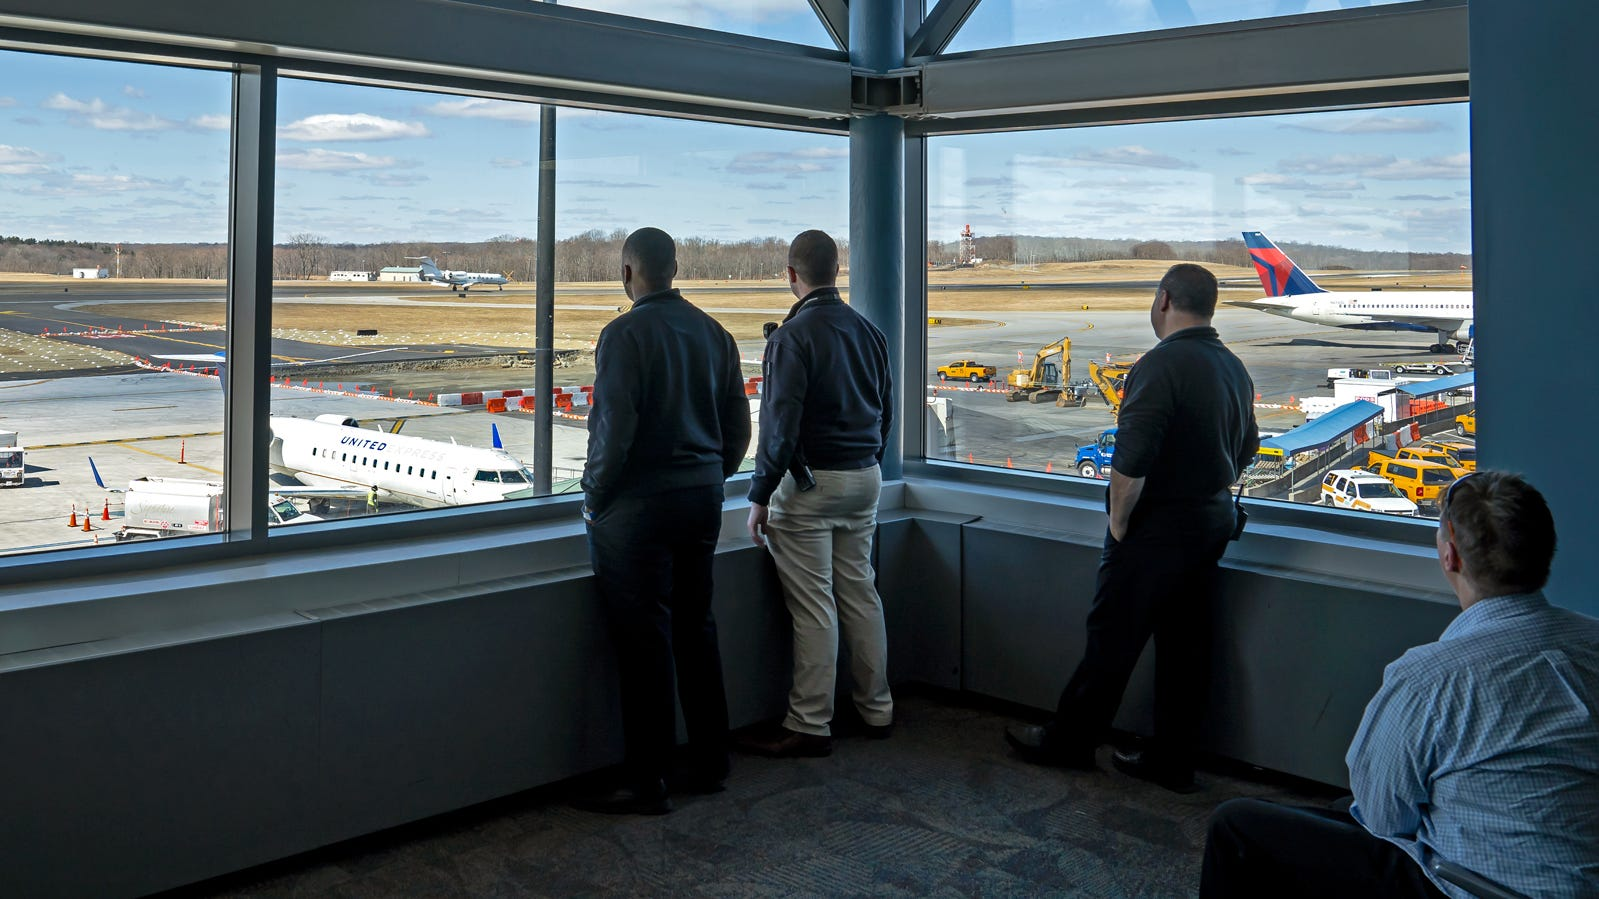 While it once had an open-air, pre-security observation deck, today the Westchester County Airport in White Plains, New York, has an enclosed observation gallery on the third floor of the main terminal with an arrival board and several rows of chairs.